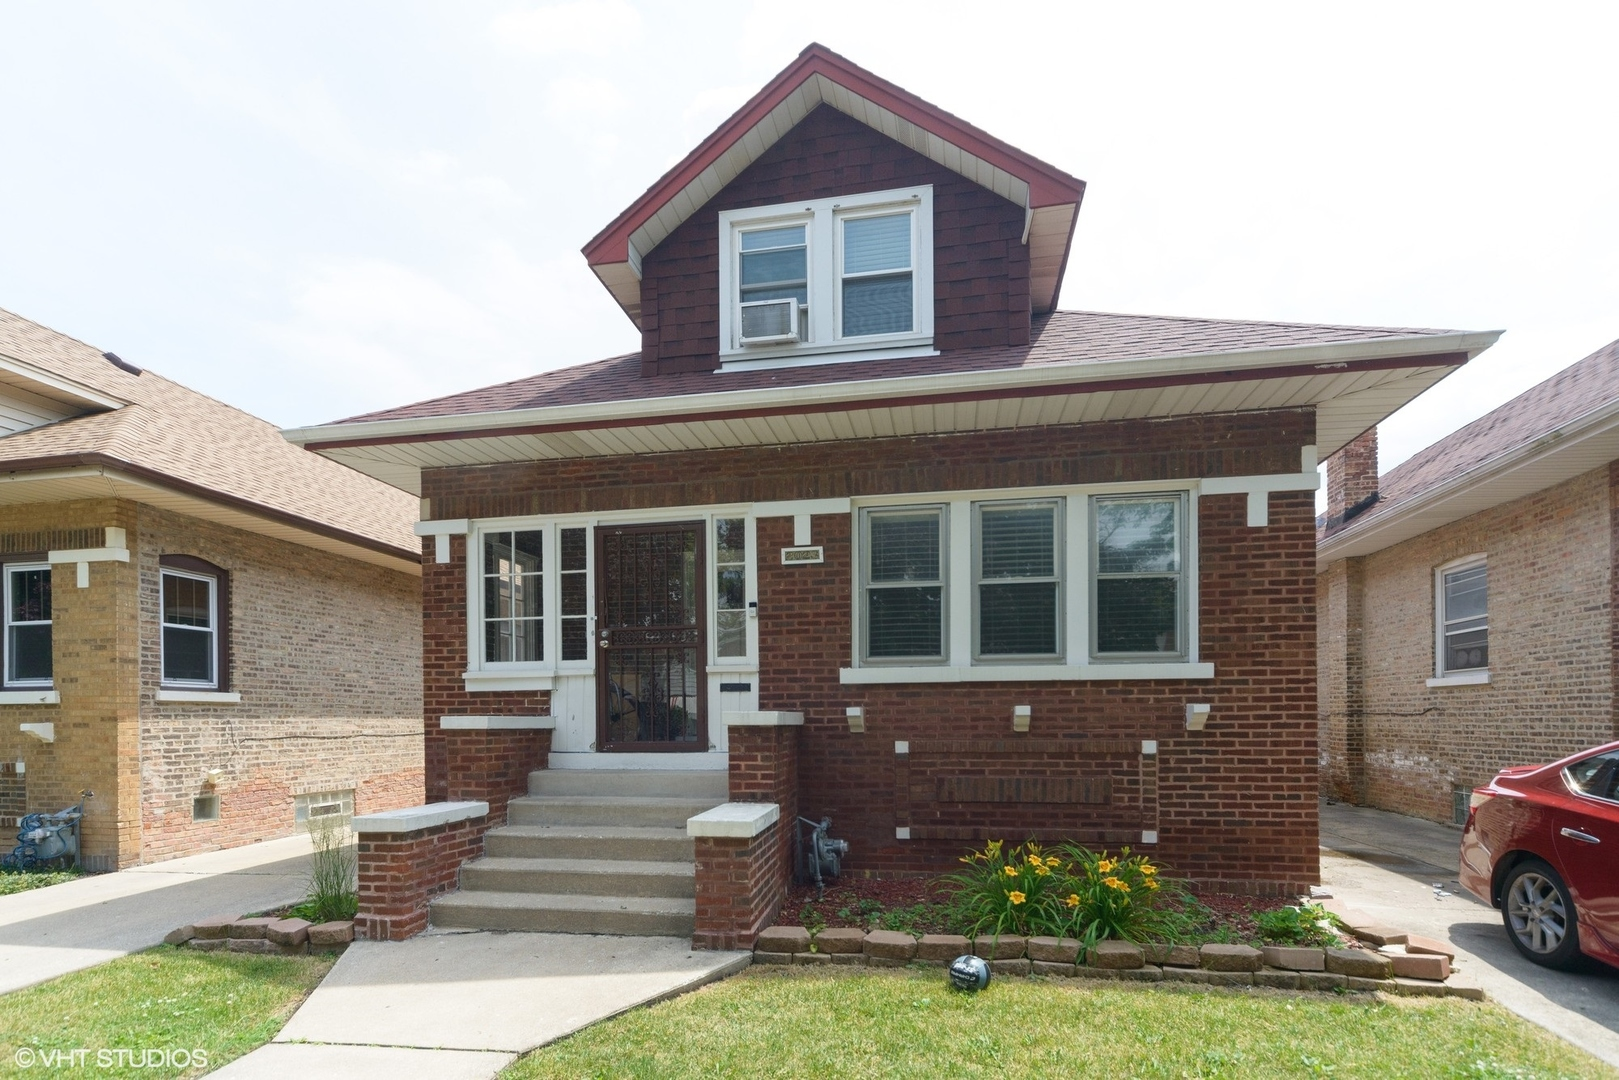 Photo for 2023 S 13th Avenue, Maywood, IL 60153 (MLS # 10745846)